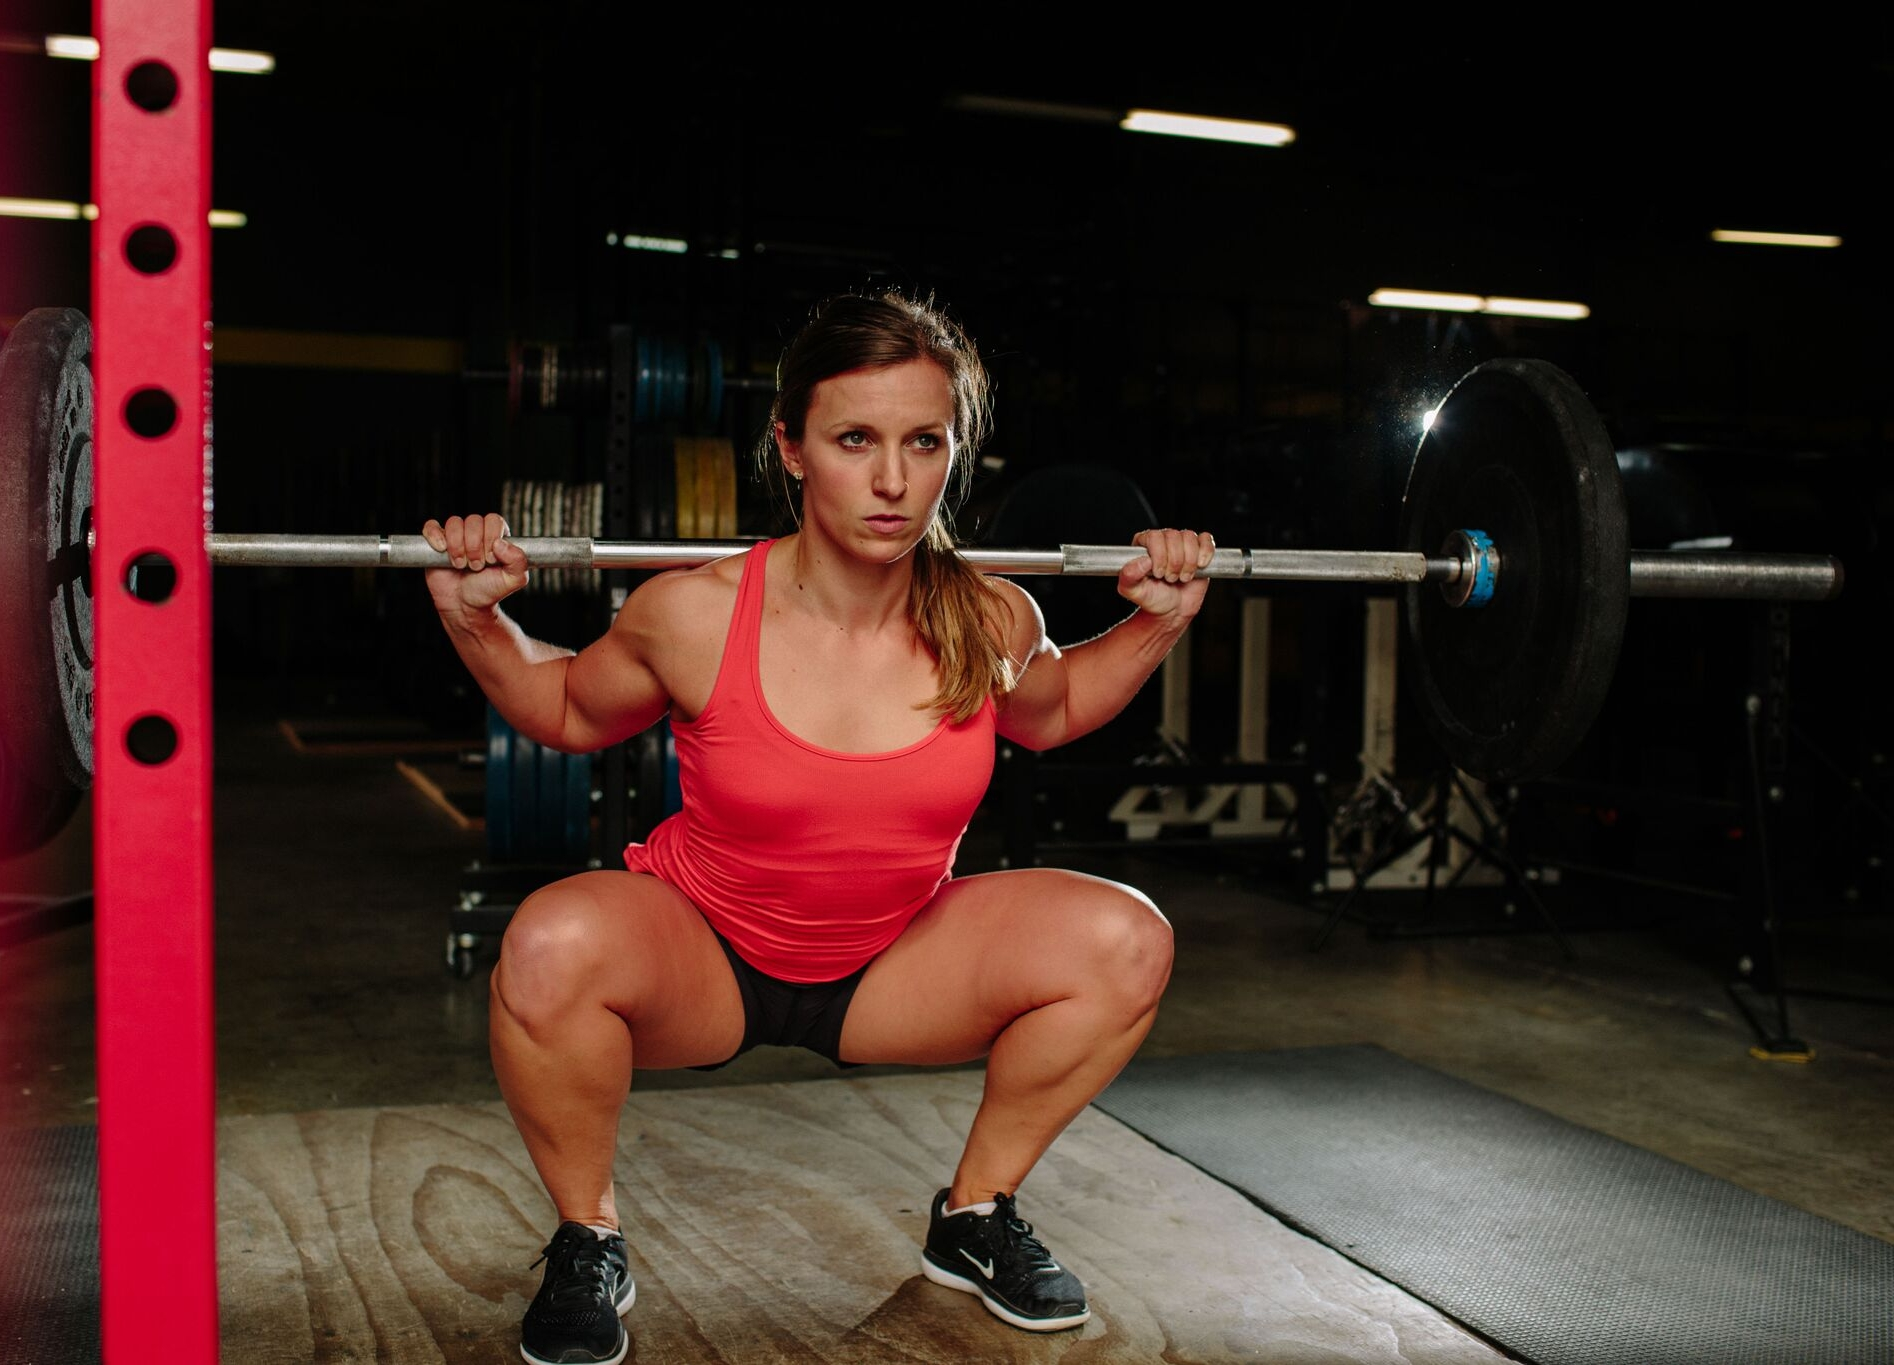 If you can sit down, you can squat! See my 3 steps below to squat better RIGHT NOW!